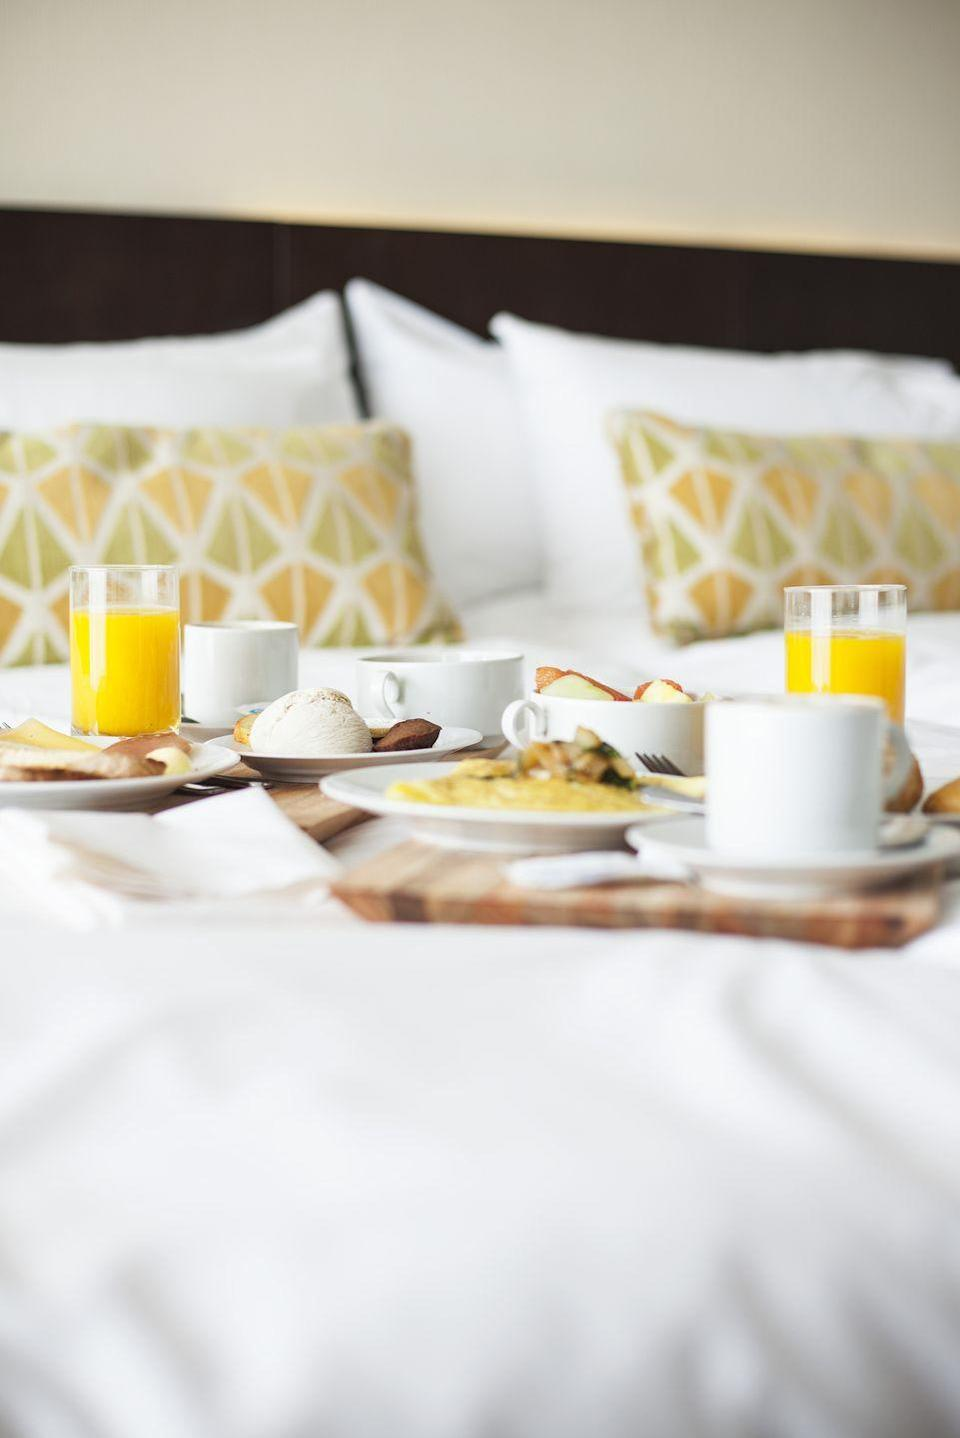 "<p>To feel like you're on vacation without going very far, book a one-night stay at a hotel or bed and breakfast nearby. Treat yourselves to room service and a dip in the hot tub if there's one available!</p><p><a class=""link rapid-noclick-resp"" href=""https://go.redirectingat.com?id=74968X1596630&url=https%3A%2F%2Fwww.tripadvisor.com%2F&sref=https%3A%2F%2Fwww.thepioneerwoman.com%2Fholidays-celebrations%2Fg35118424%2Fthings-to-do-on-valentines-day%2F"" rel=""nofollow noopener"" target=""_blank"" data-ylk=""slk:BOOK YOUR VISIT"">BOOK YOUR VISIT</a></p>"